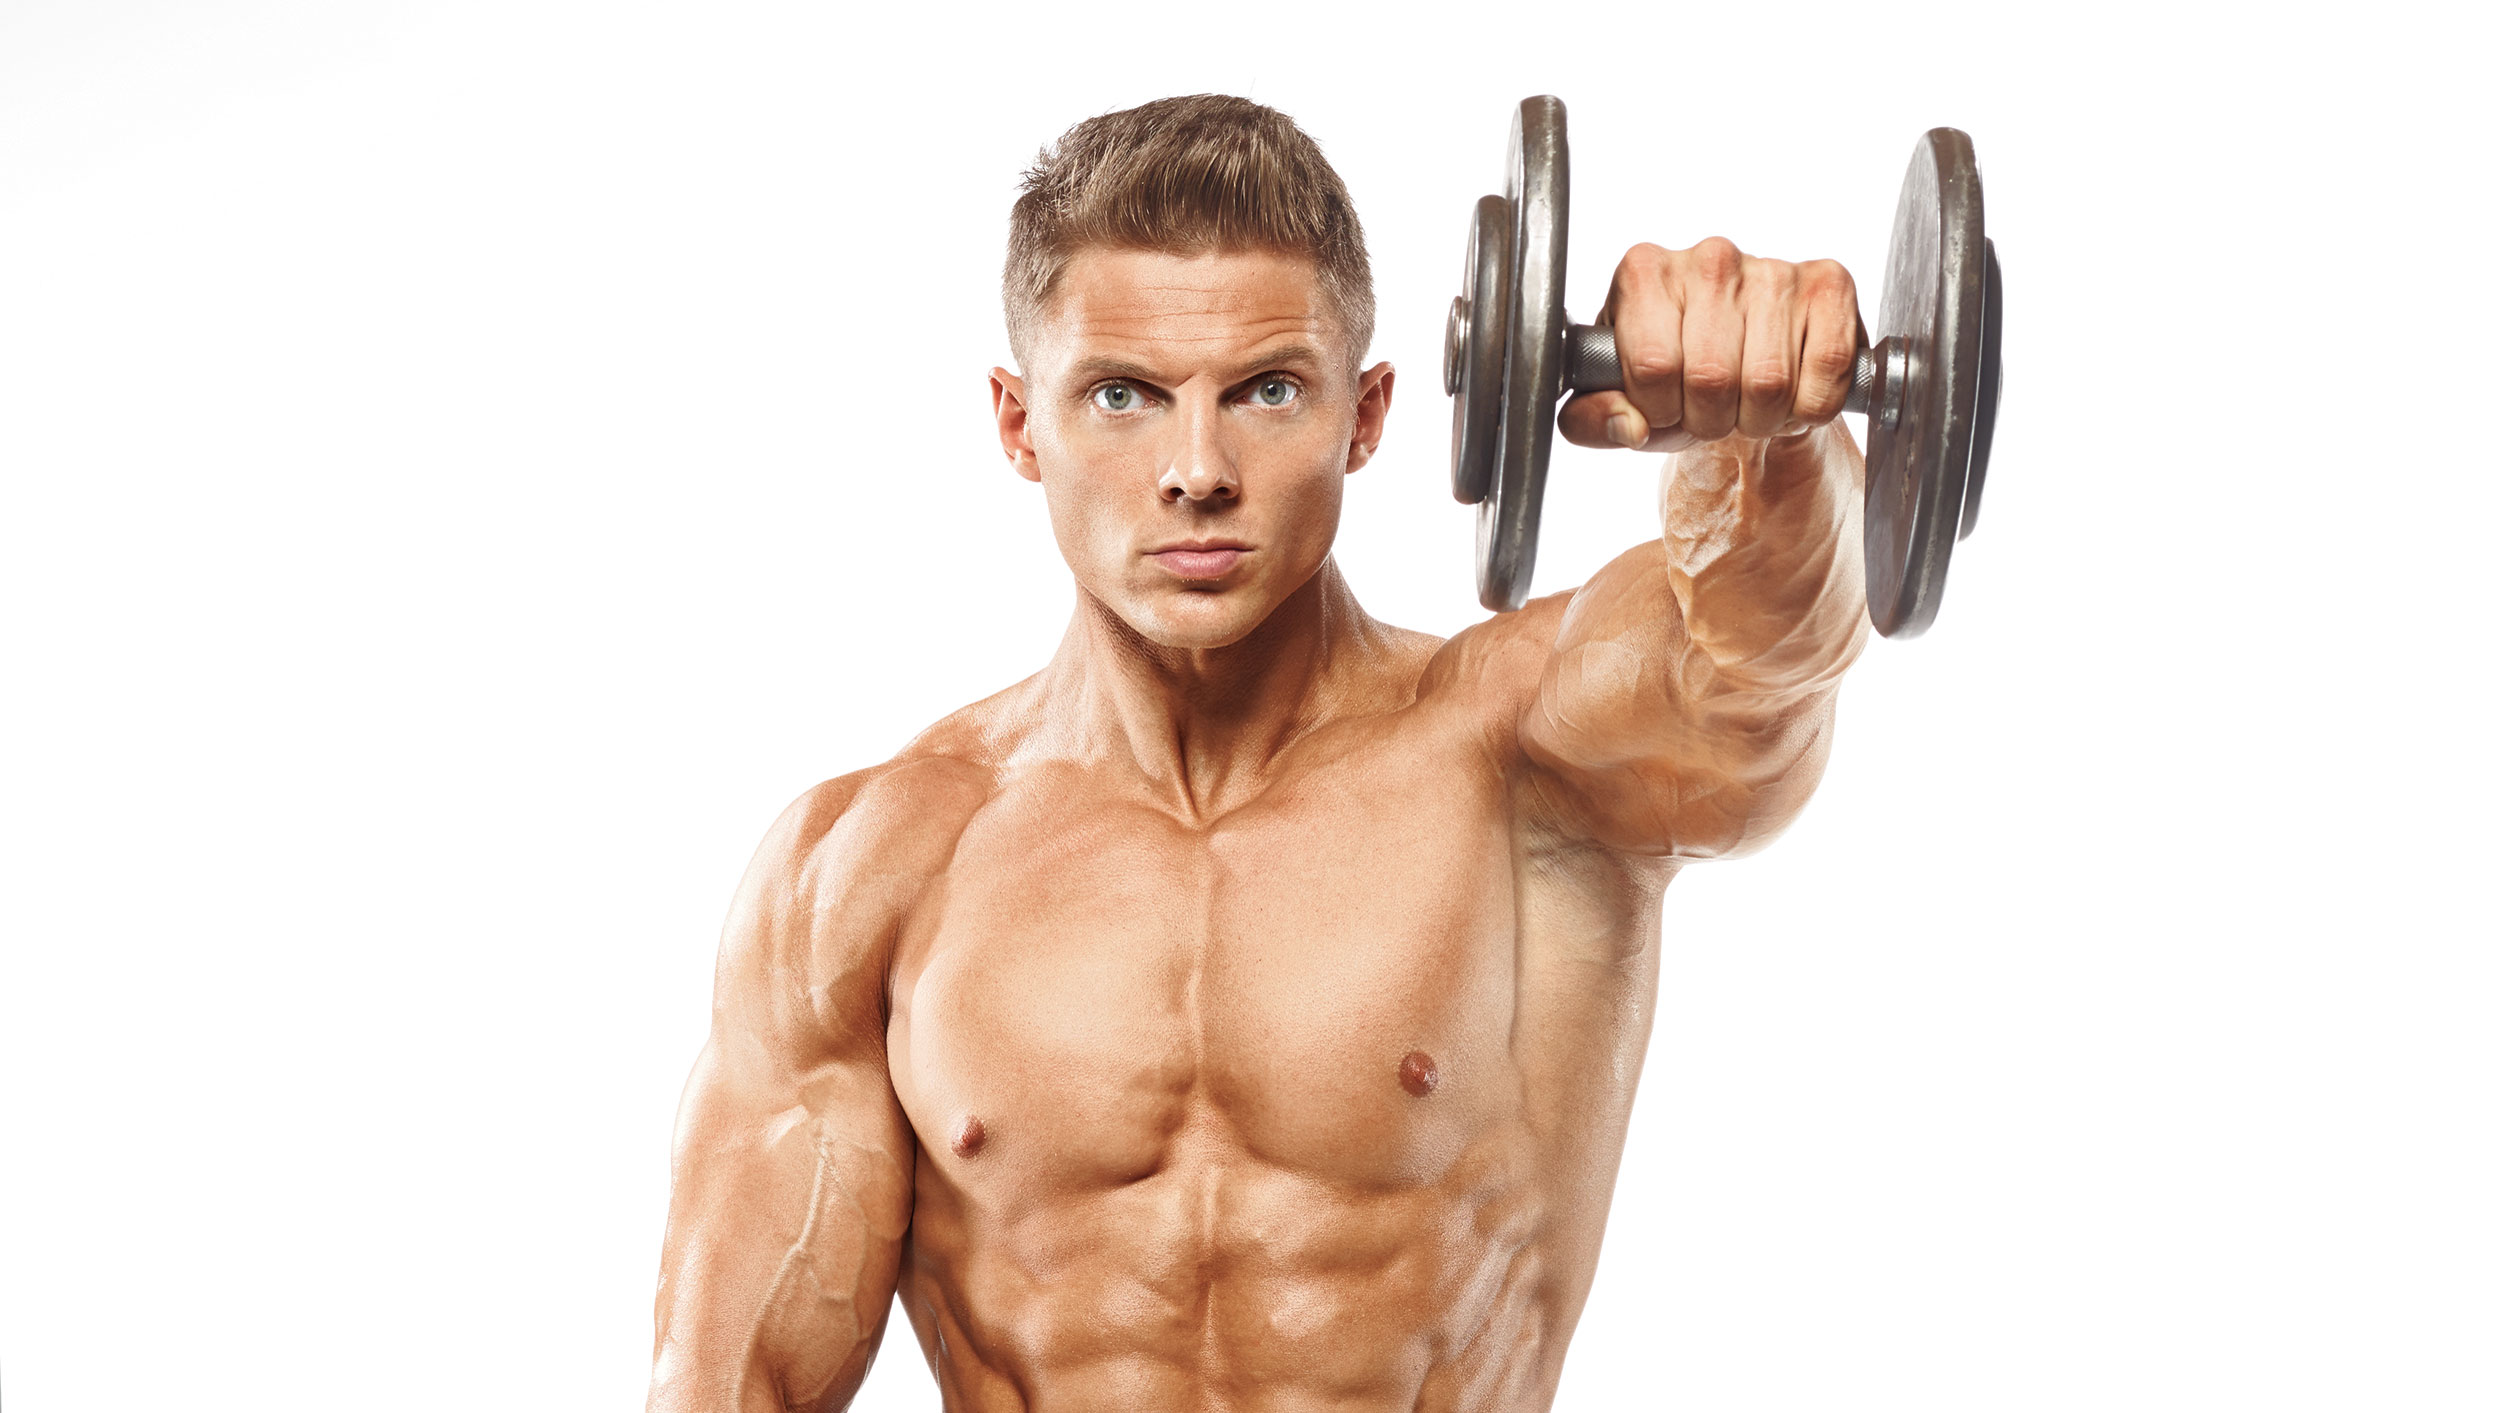 Get in Peak Condition WIth the 7-Day Shred